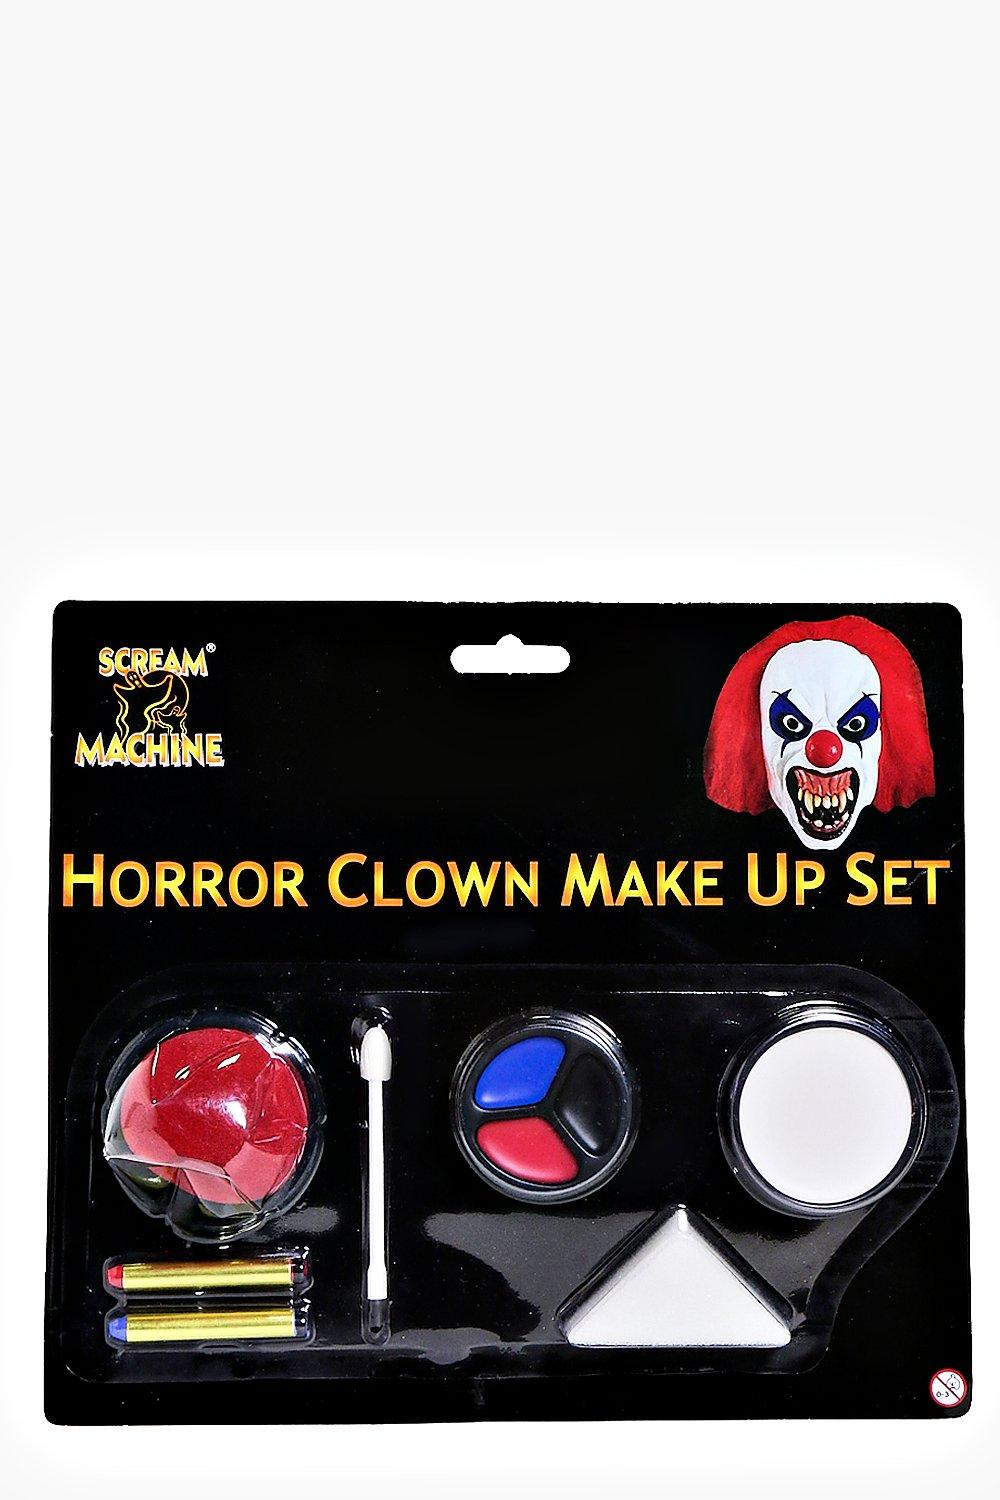 Halloween Horror Clown Make Up Set